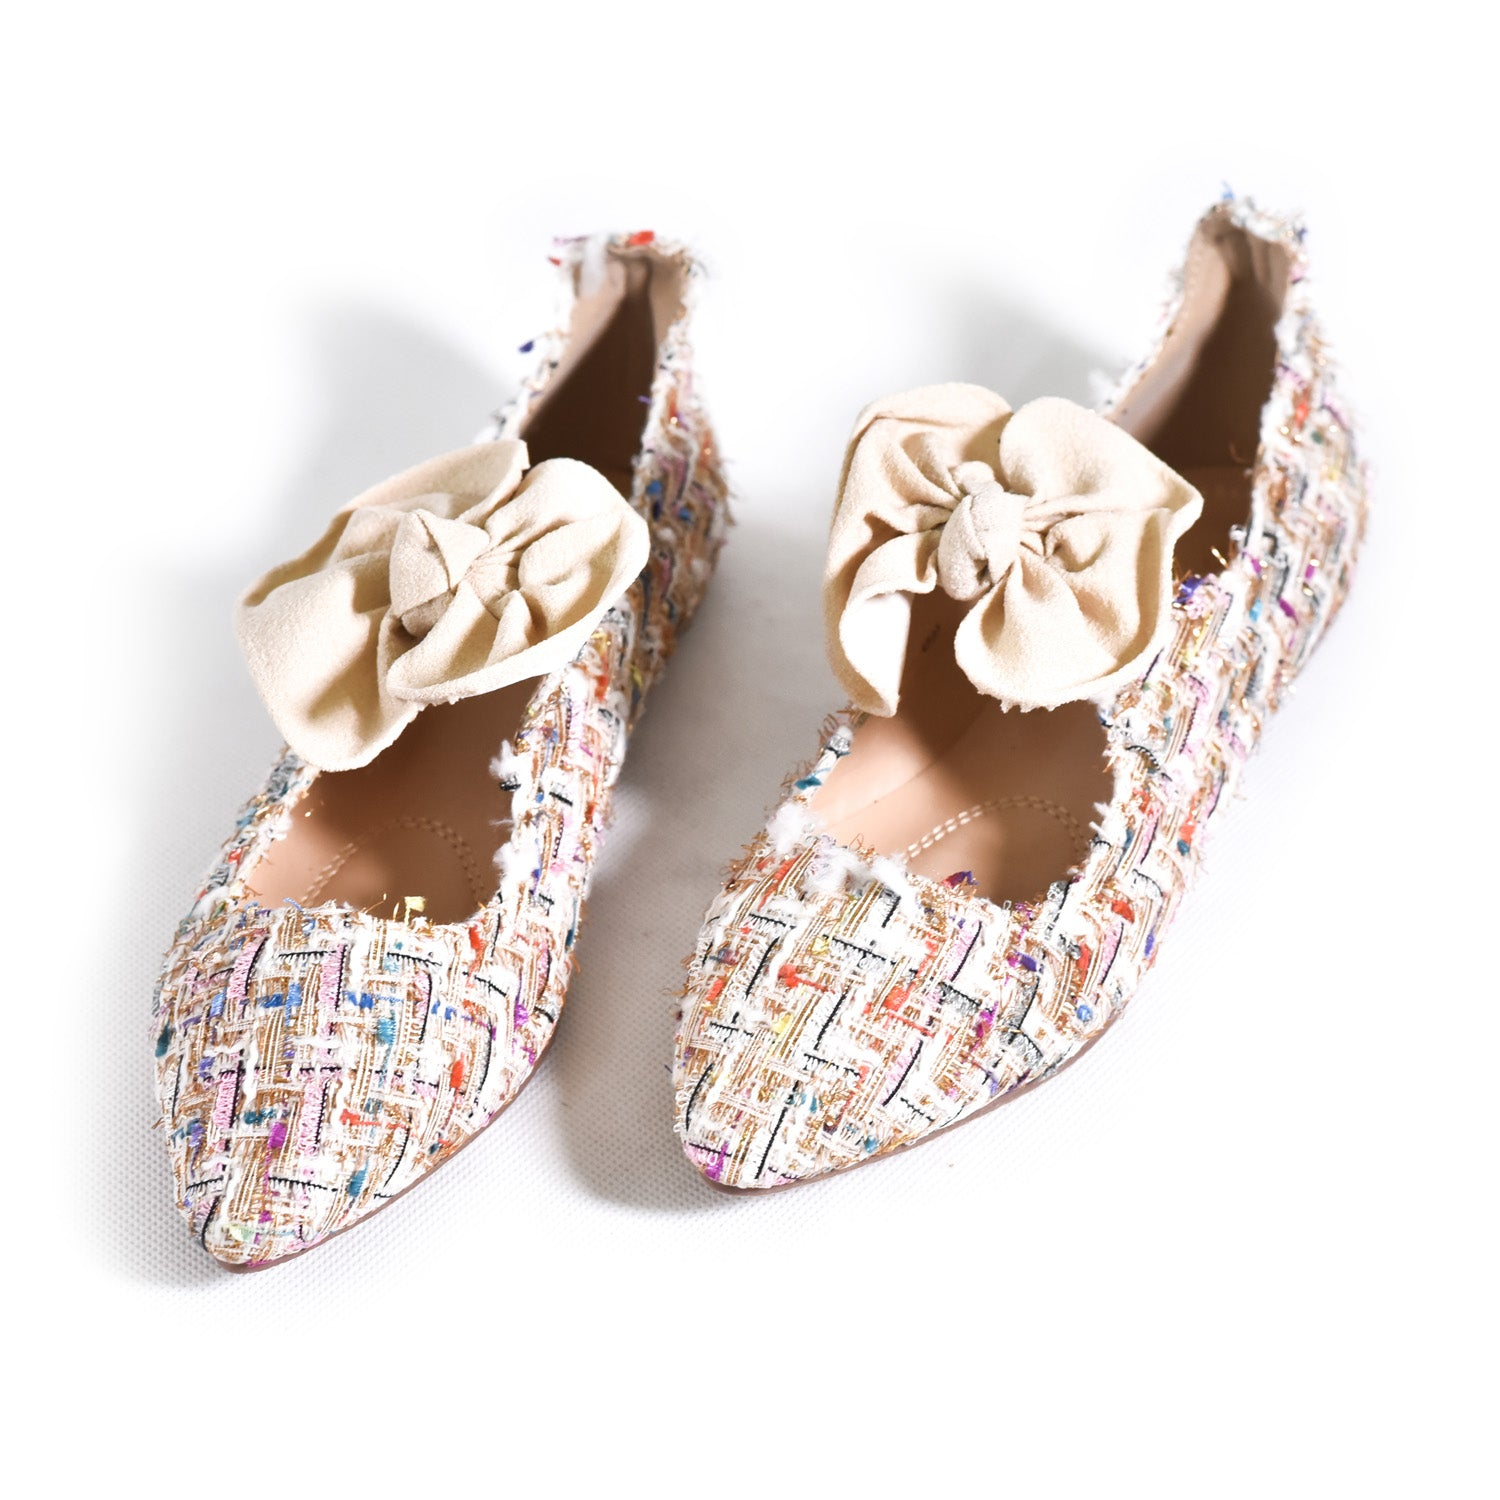 Colorful Flat Shoes with front knots